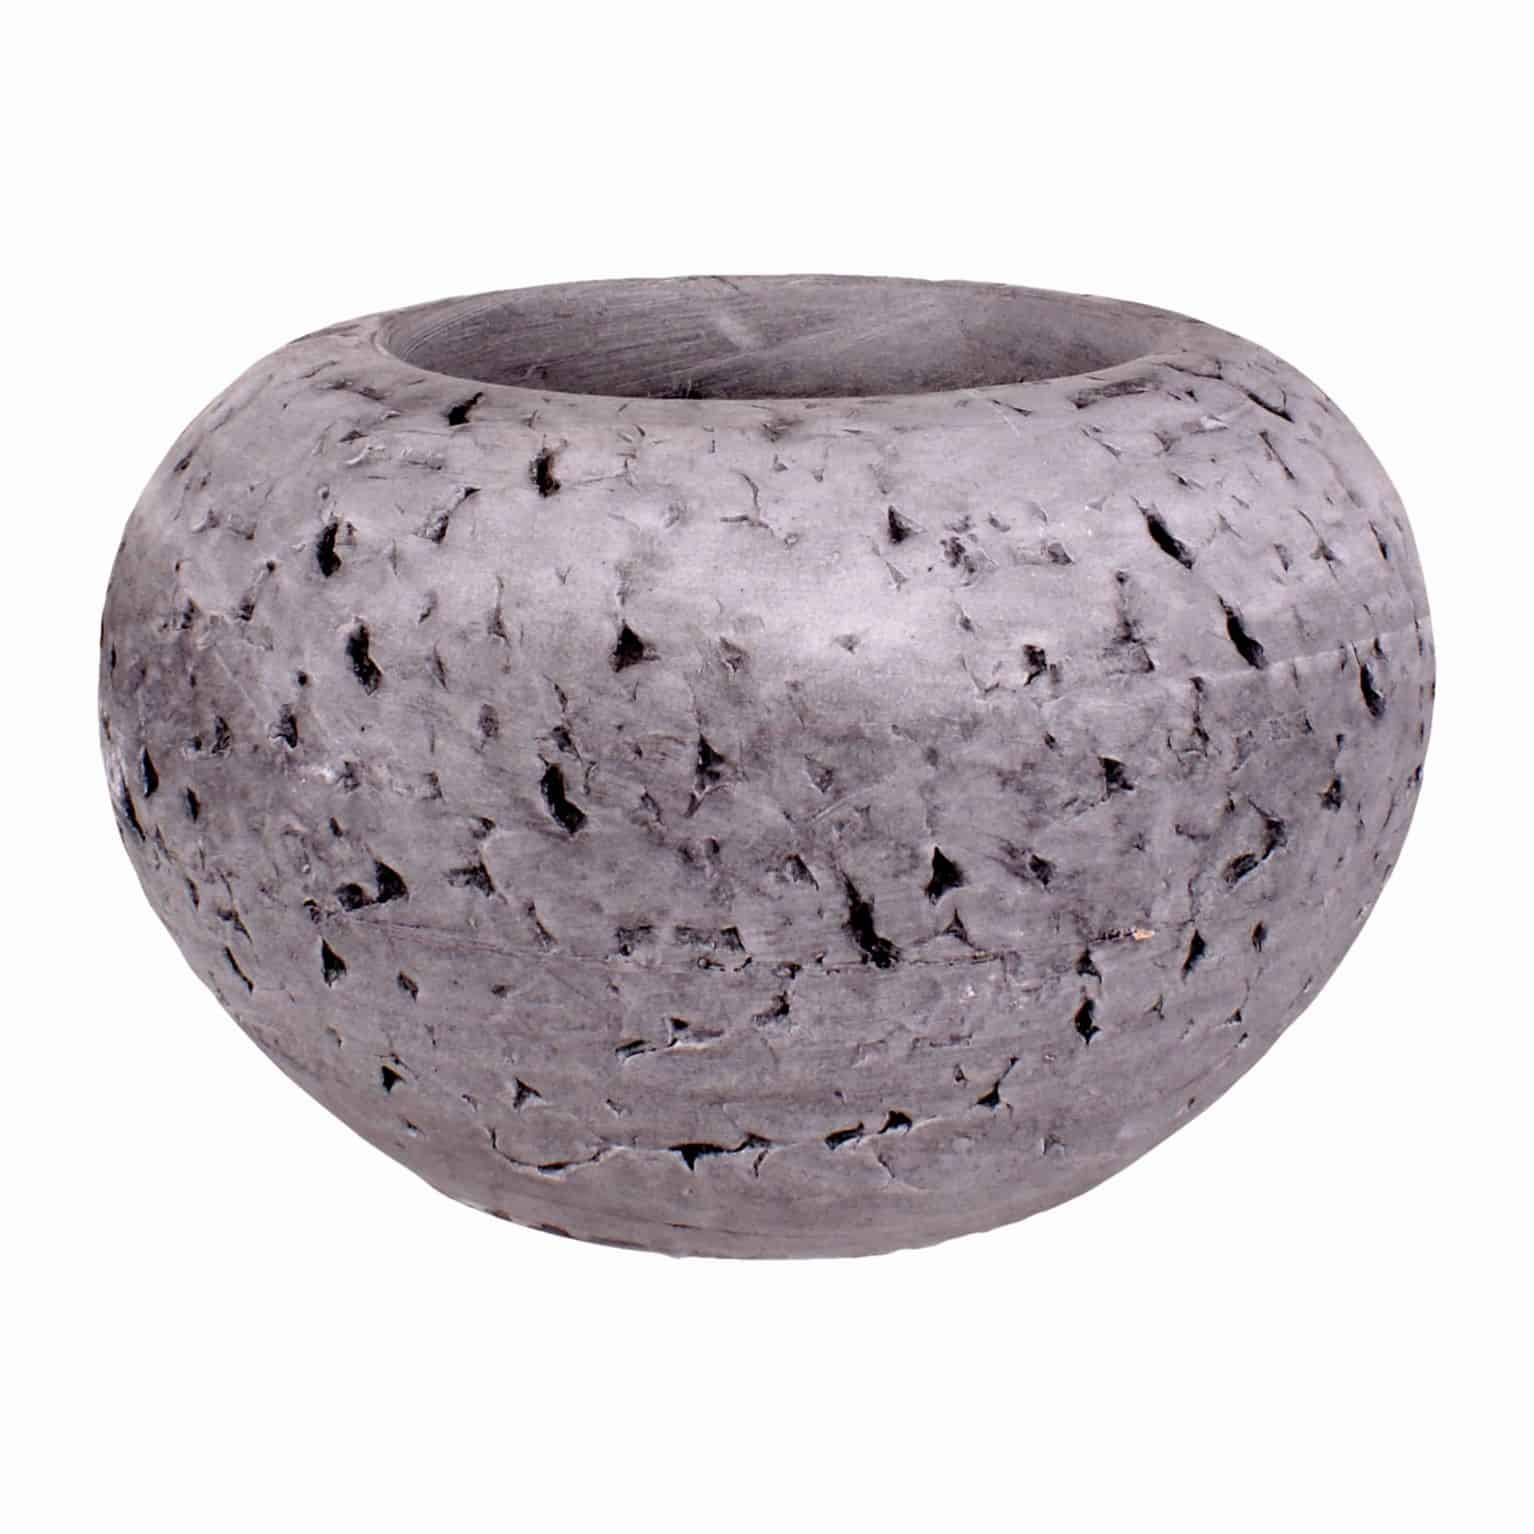 Buy our hand made unique design light grey cranium planter pot. A modern style with interesting grooves to add a chic touch to your flowers and plants.